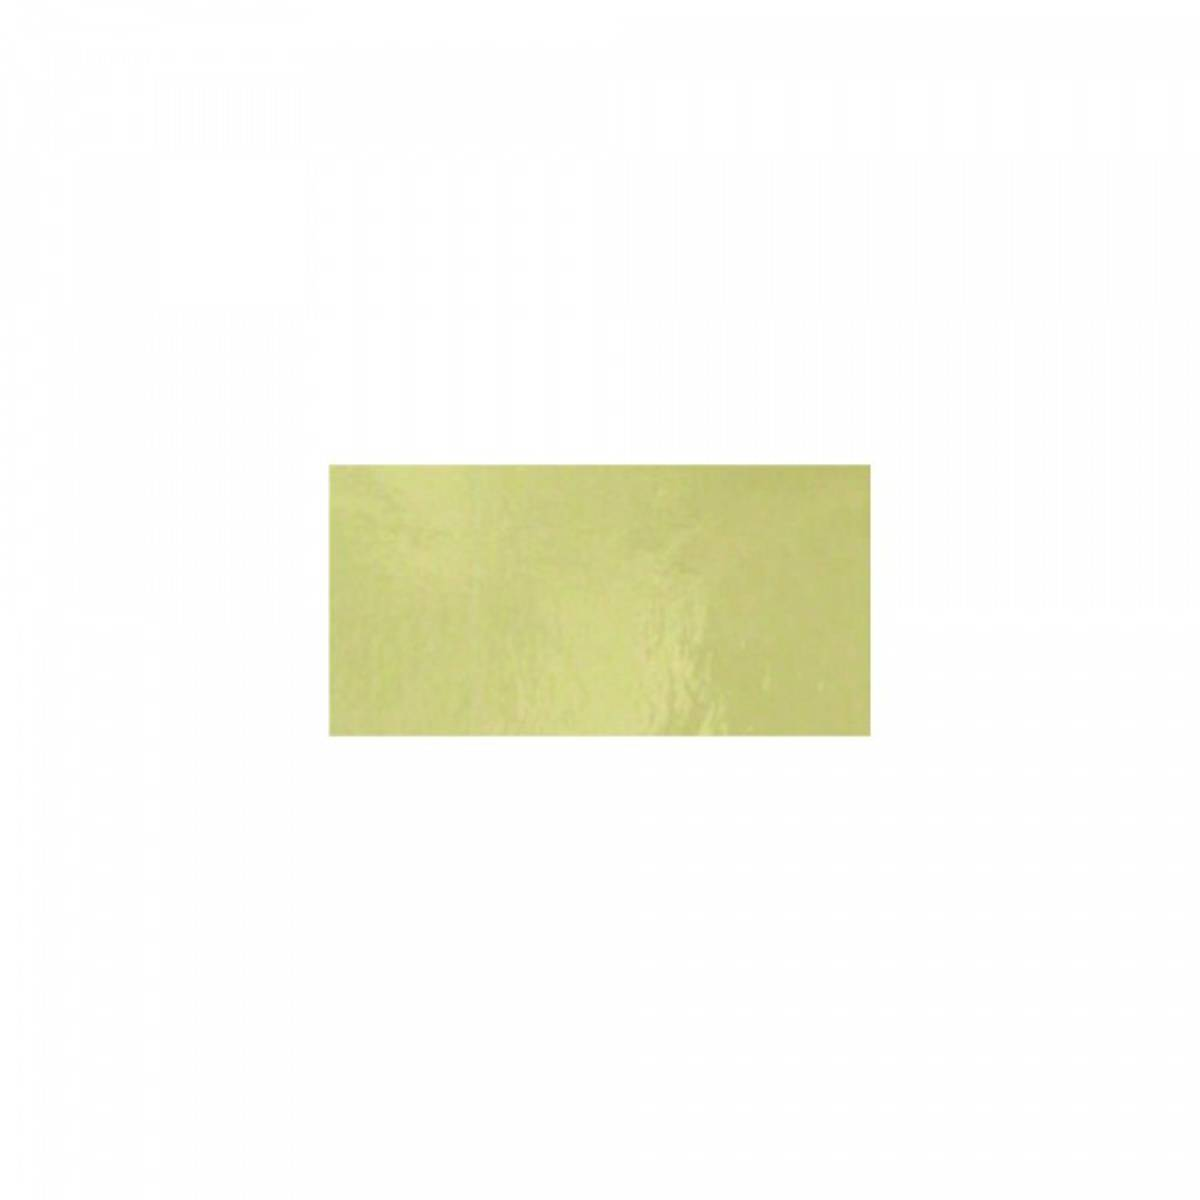 Bazzill Gold Foil Cardstock